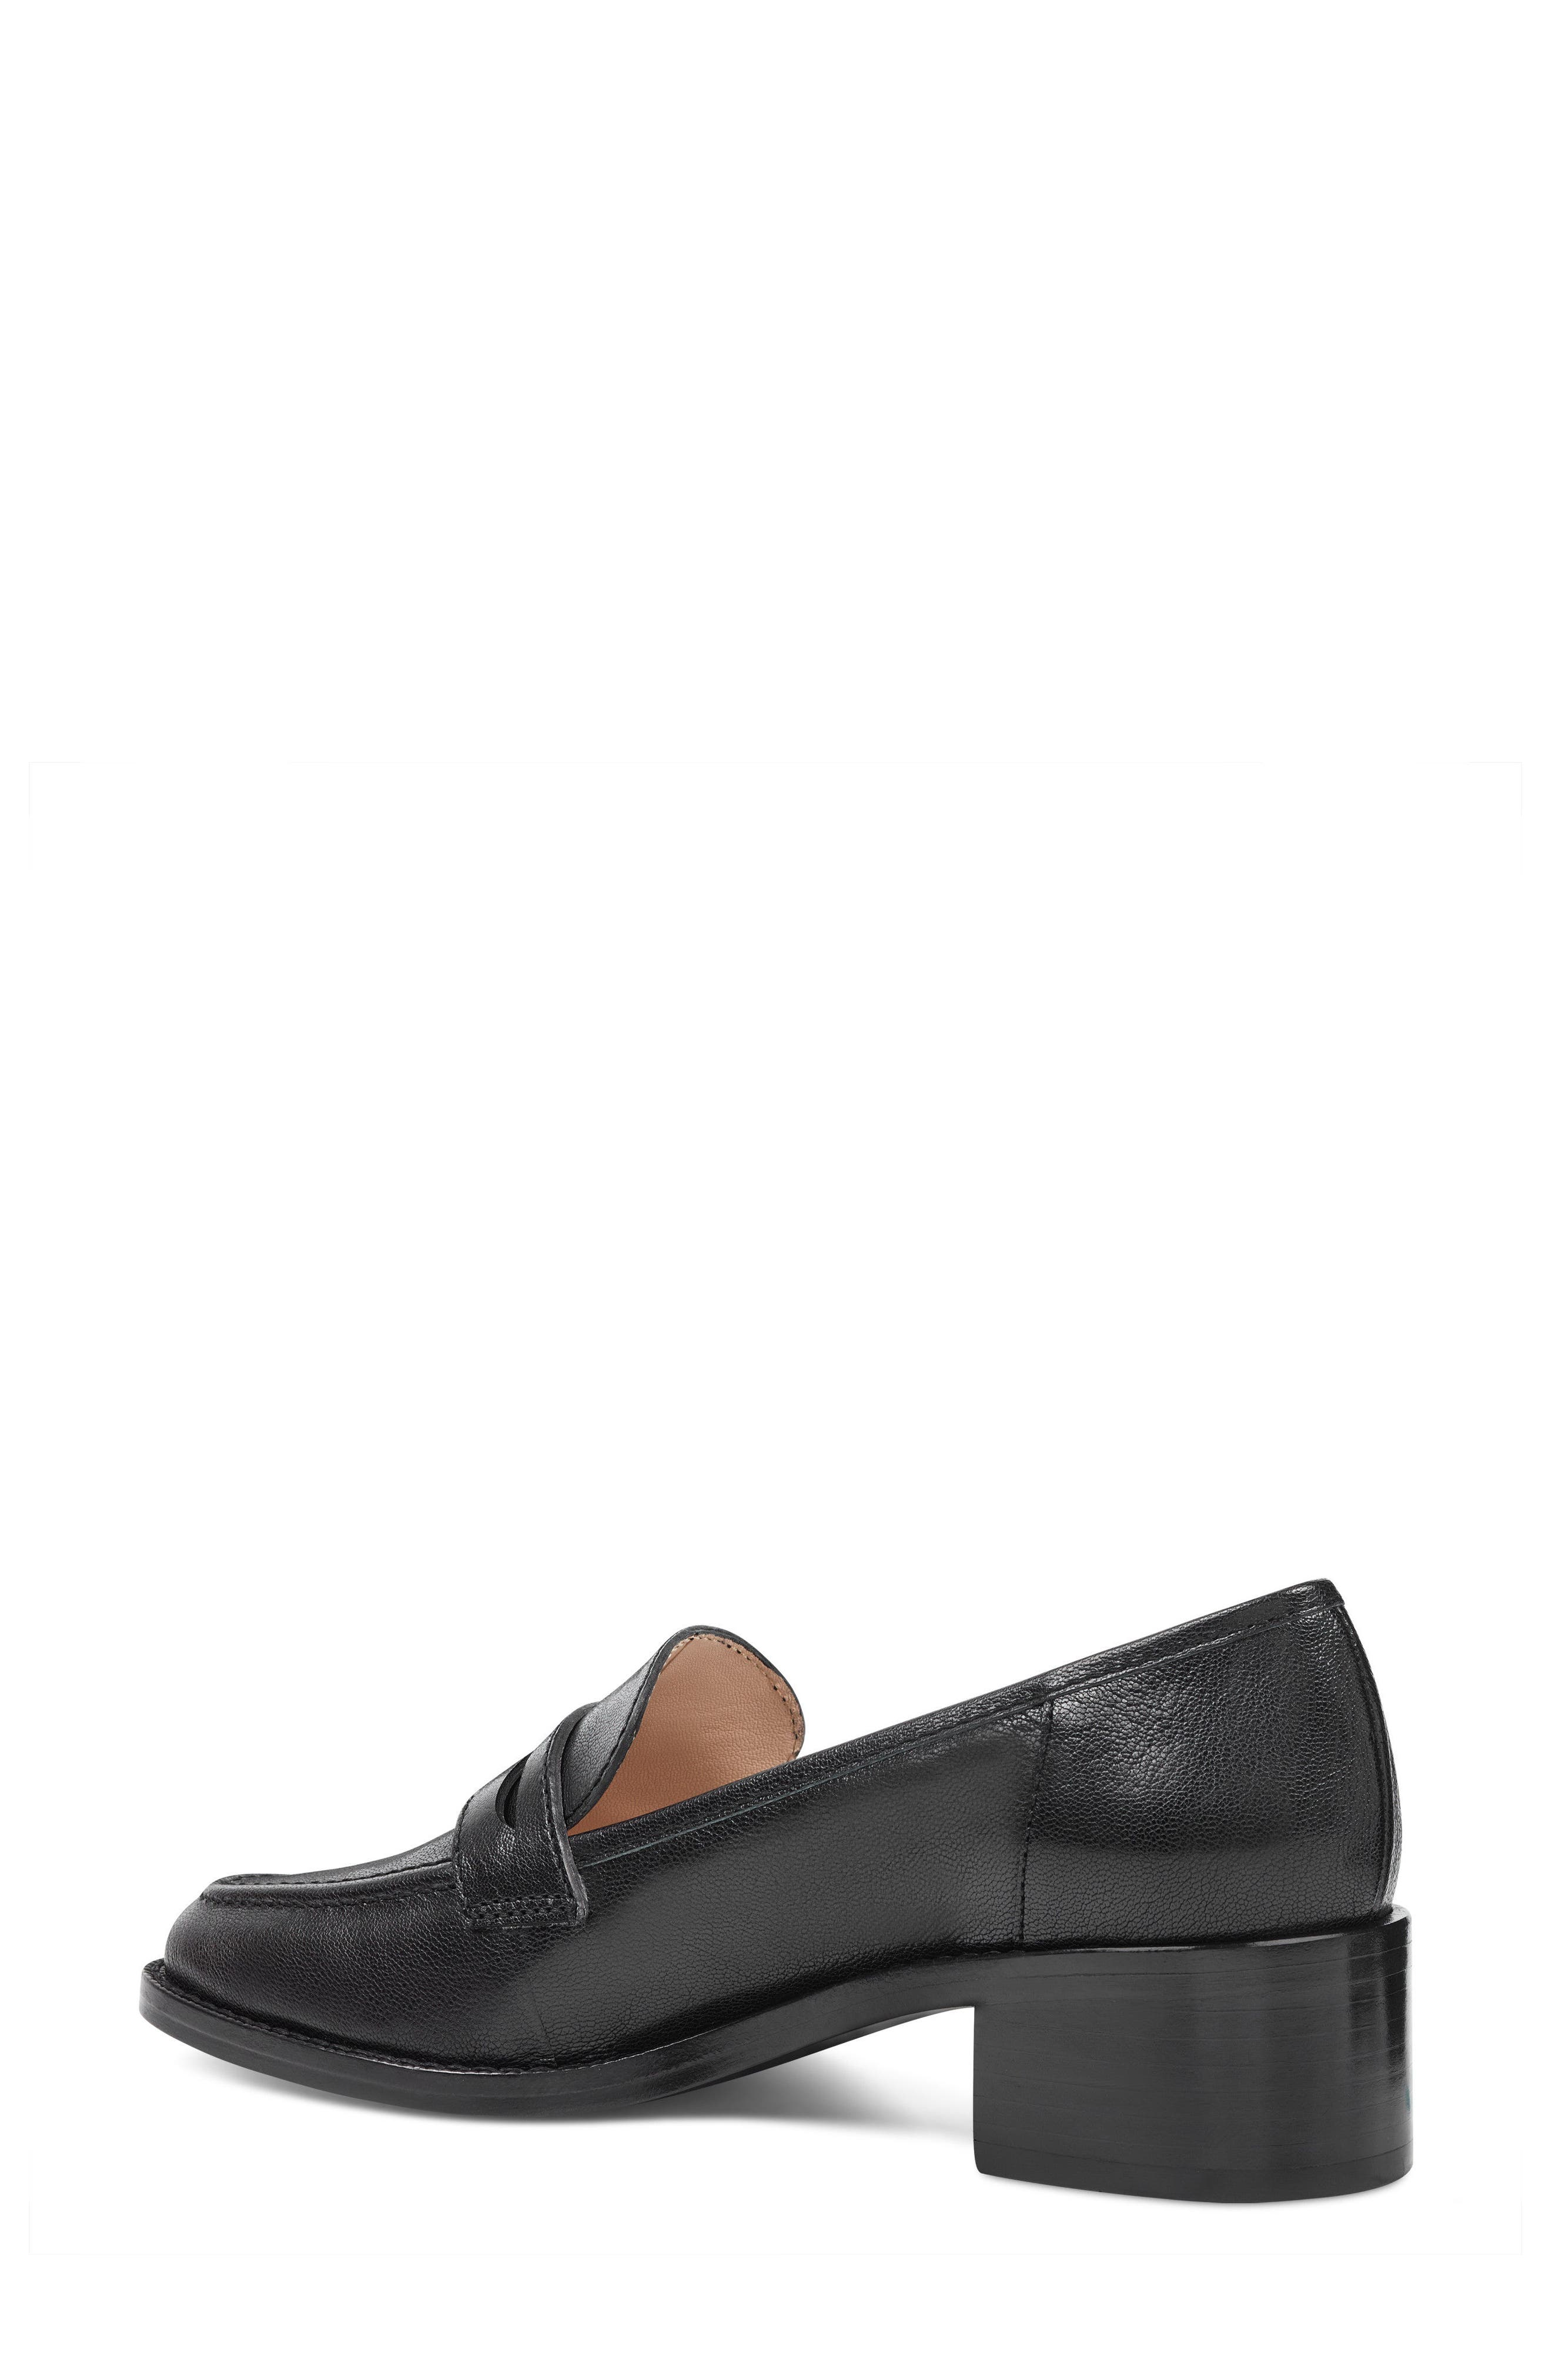 Kimmy - 40th Anniversary Capsule Collection Penny Loafer,                             Alternate thumbnail 2, color,                             BLACK LEATHER